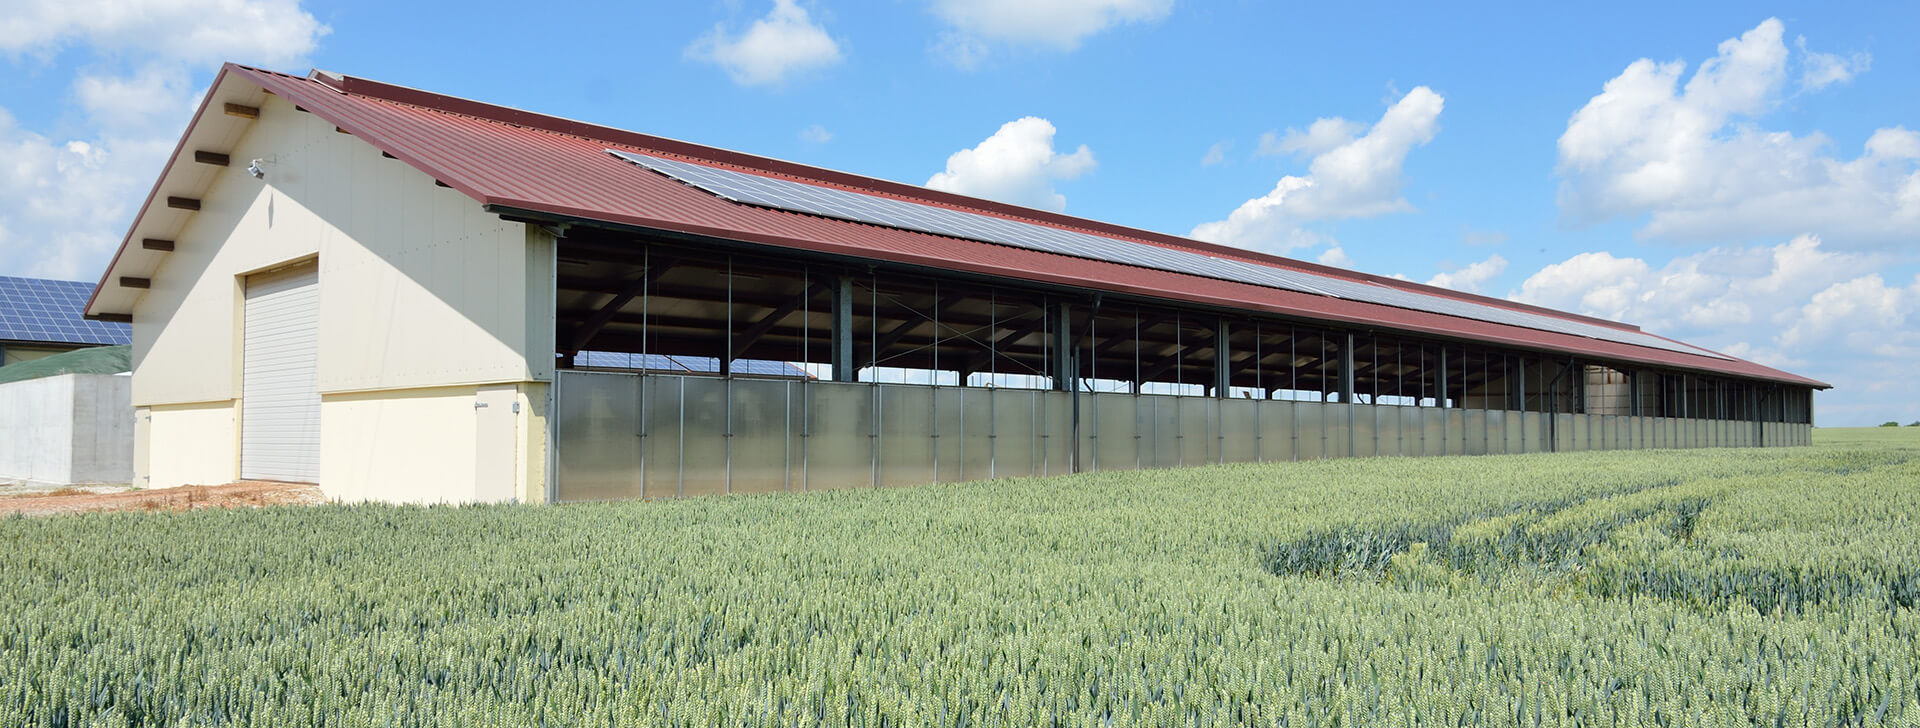 friedman cattle uses building copy britespan when agricultural buildings barns